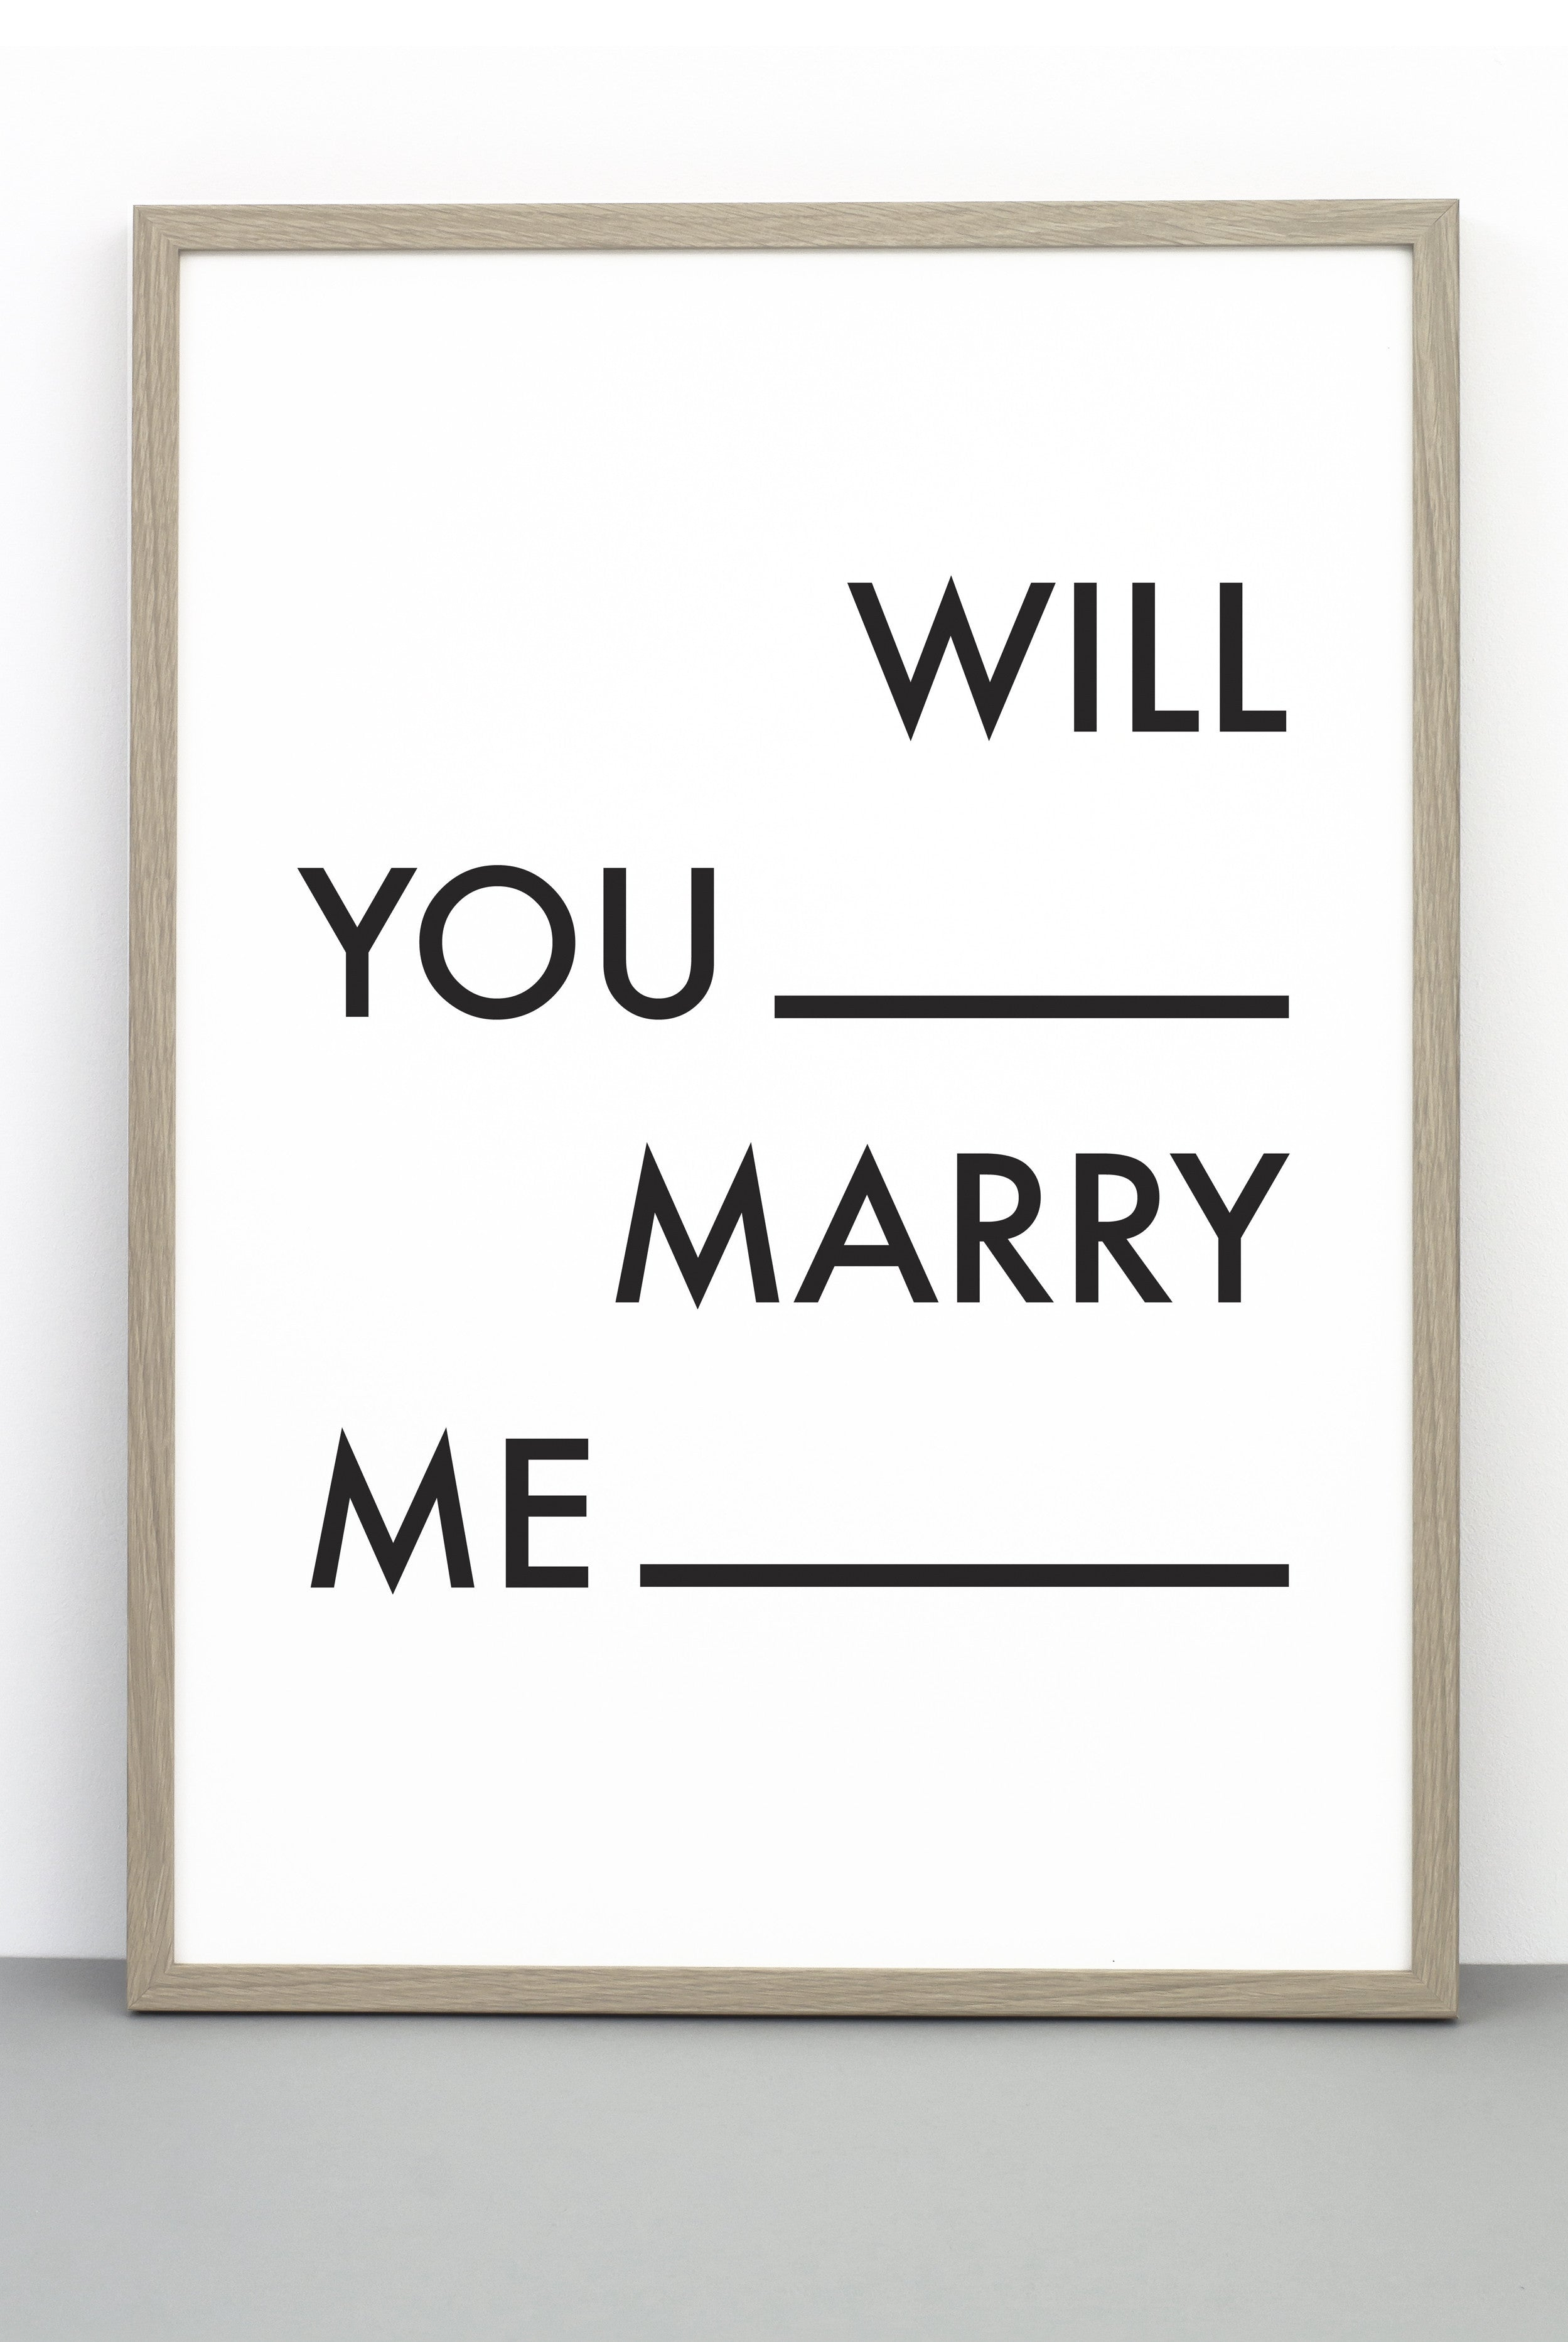 WILL YOU MARRY ME PRINT